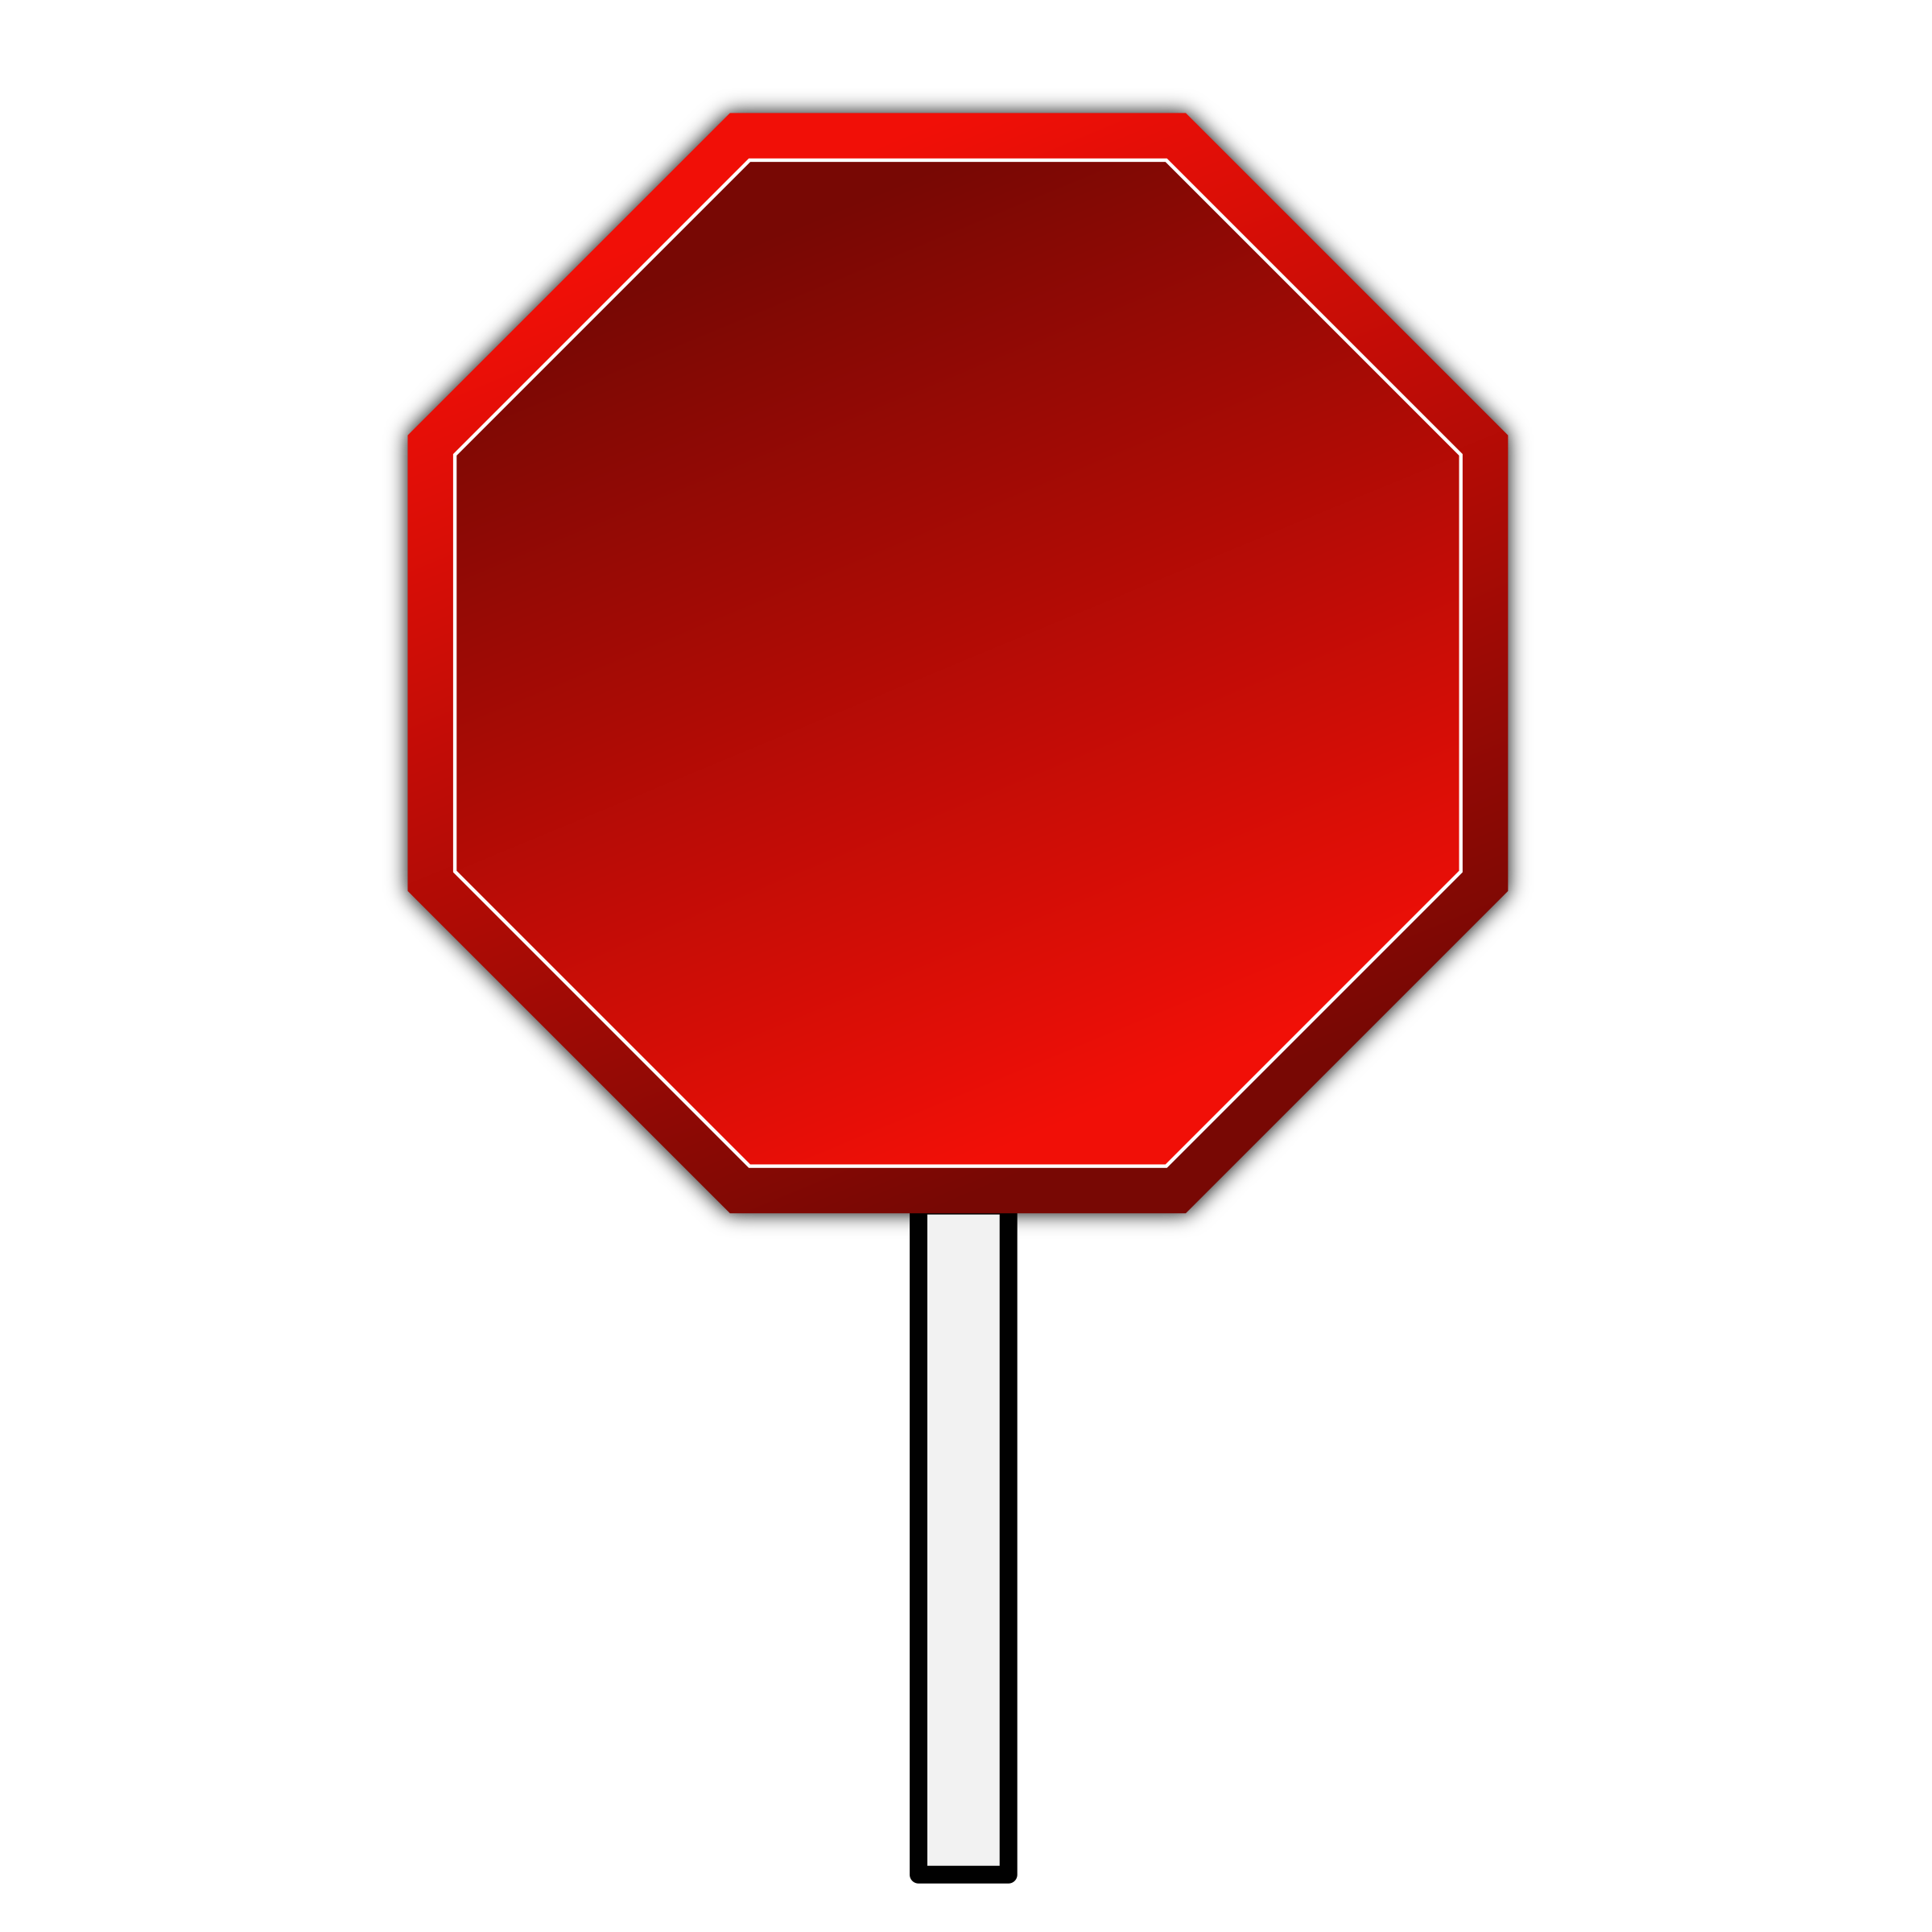 Stop clipart png. Sign big image